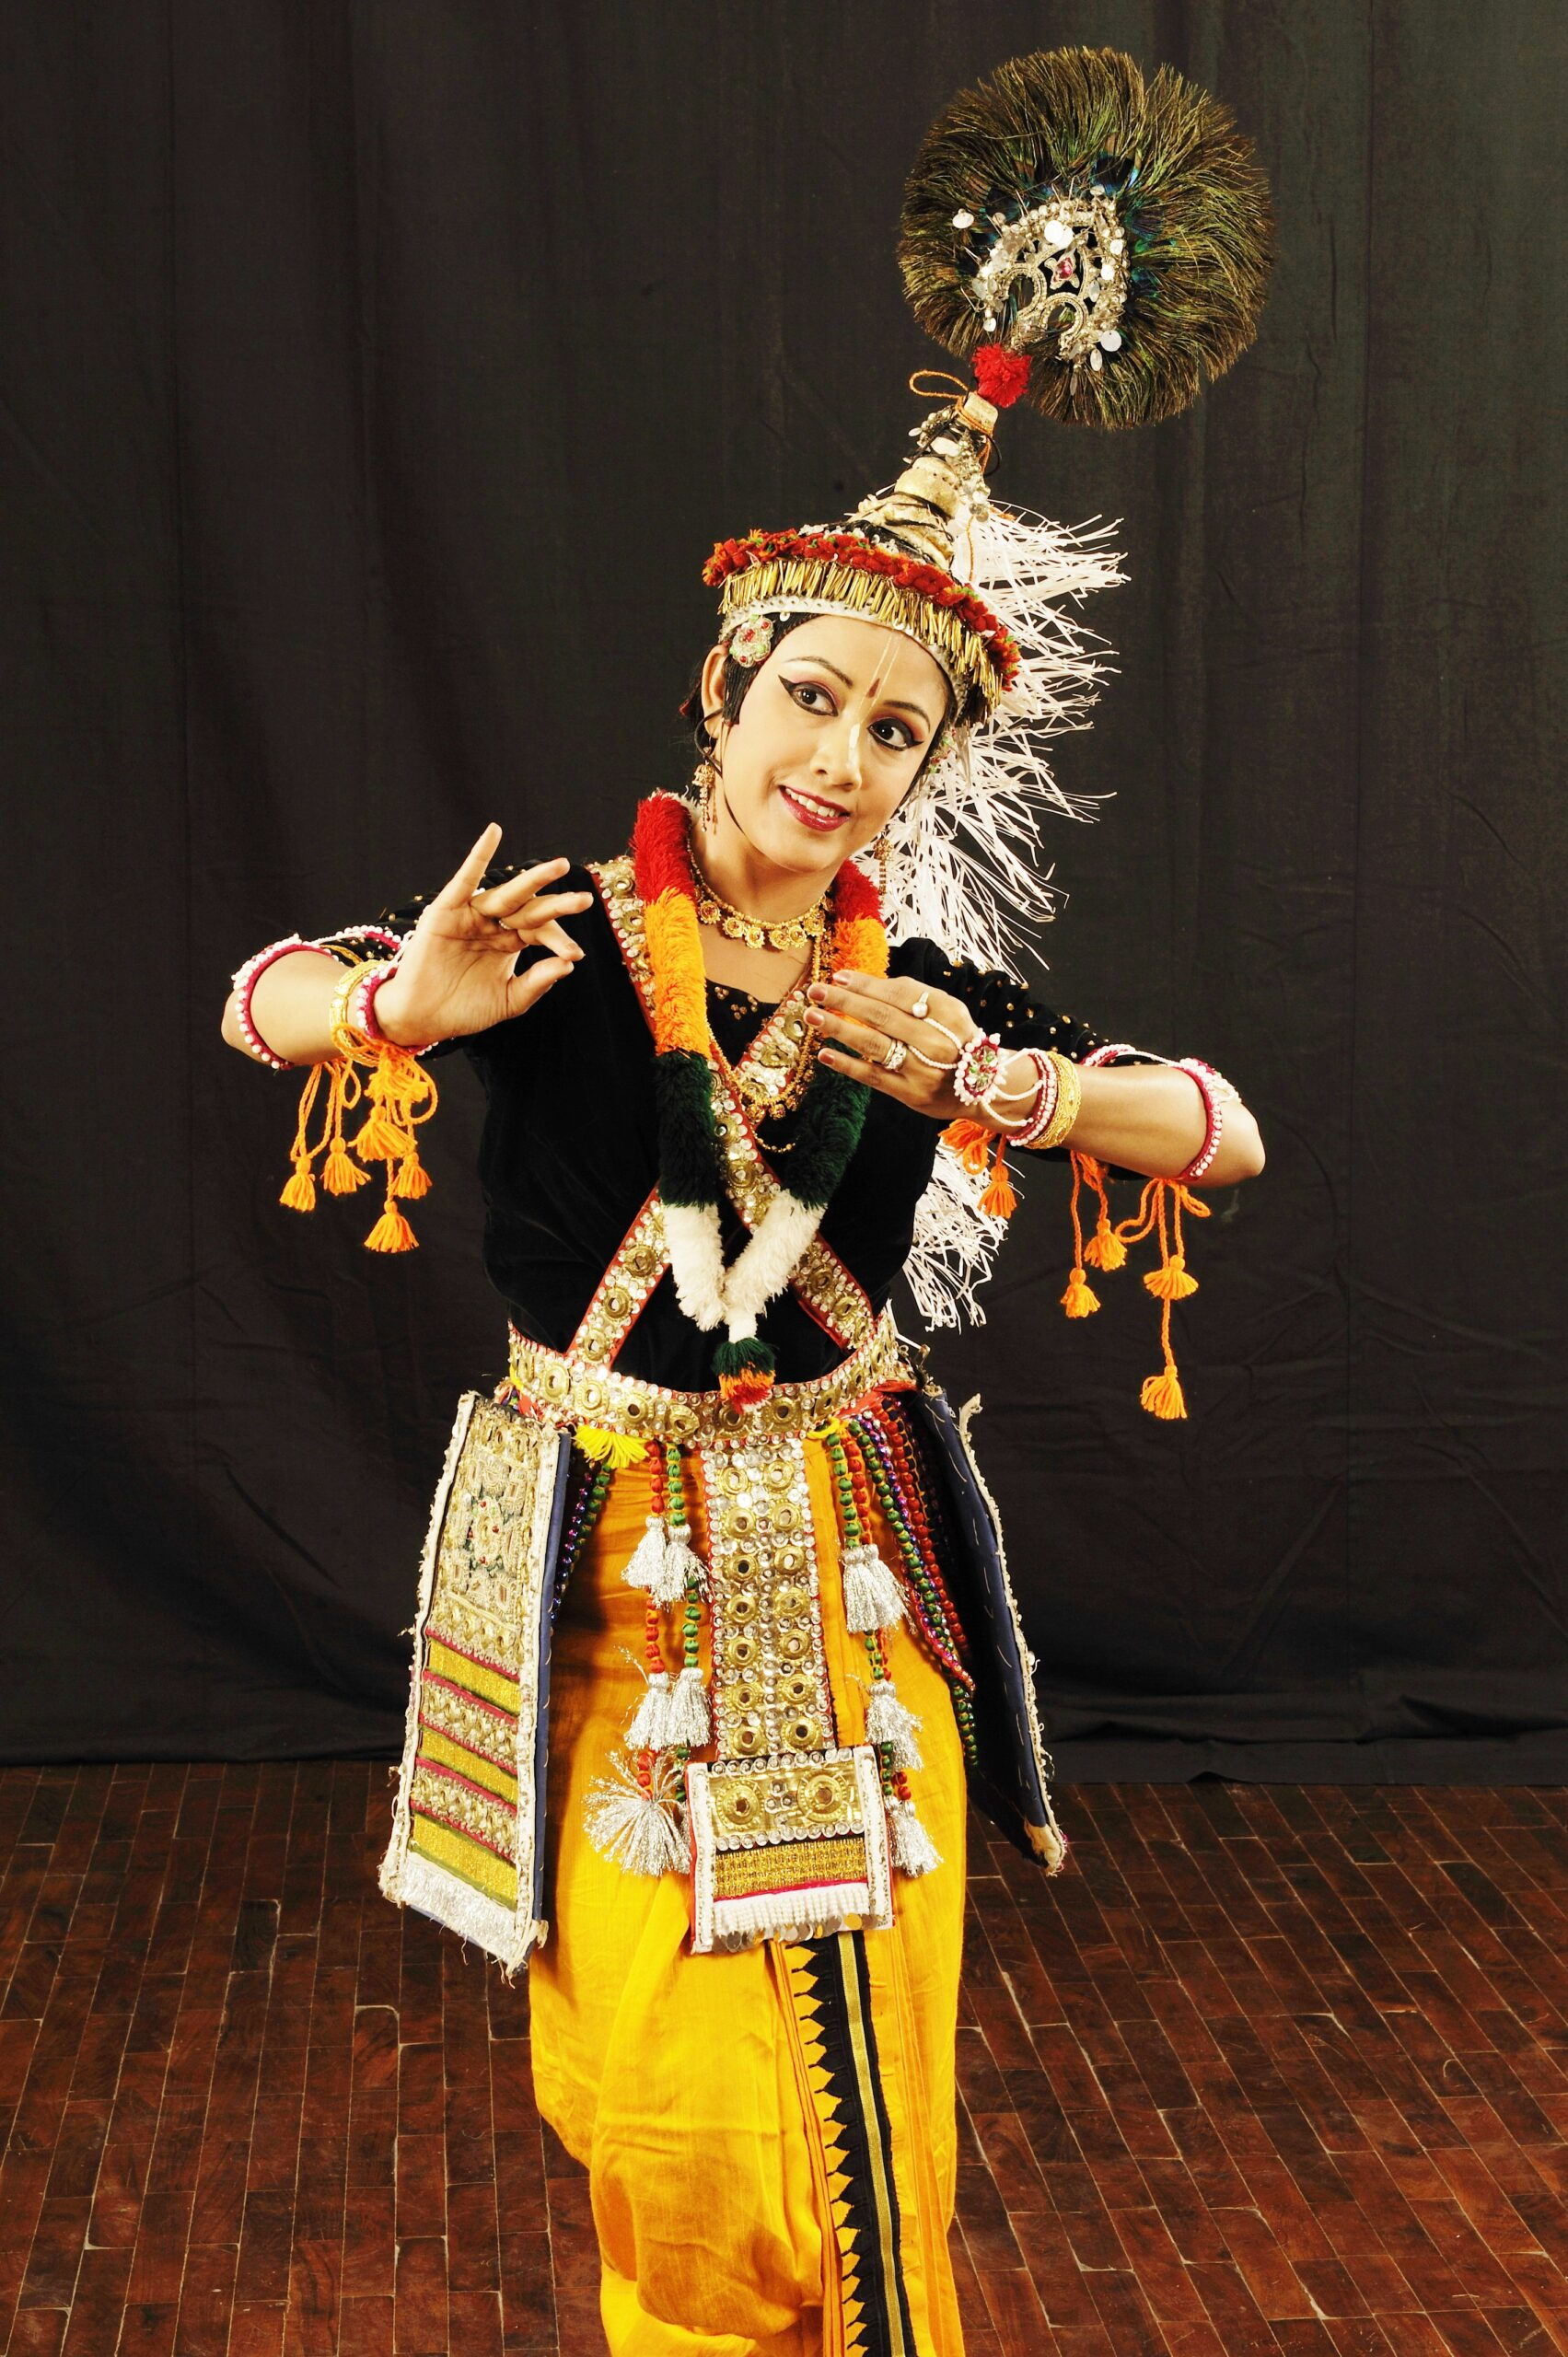 A dancer poses dressed in elaborate, bright traditional Indian costuming